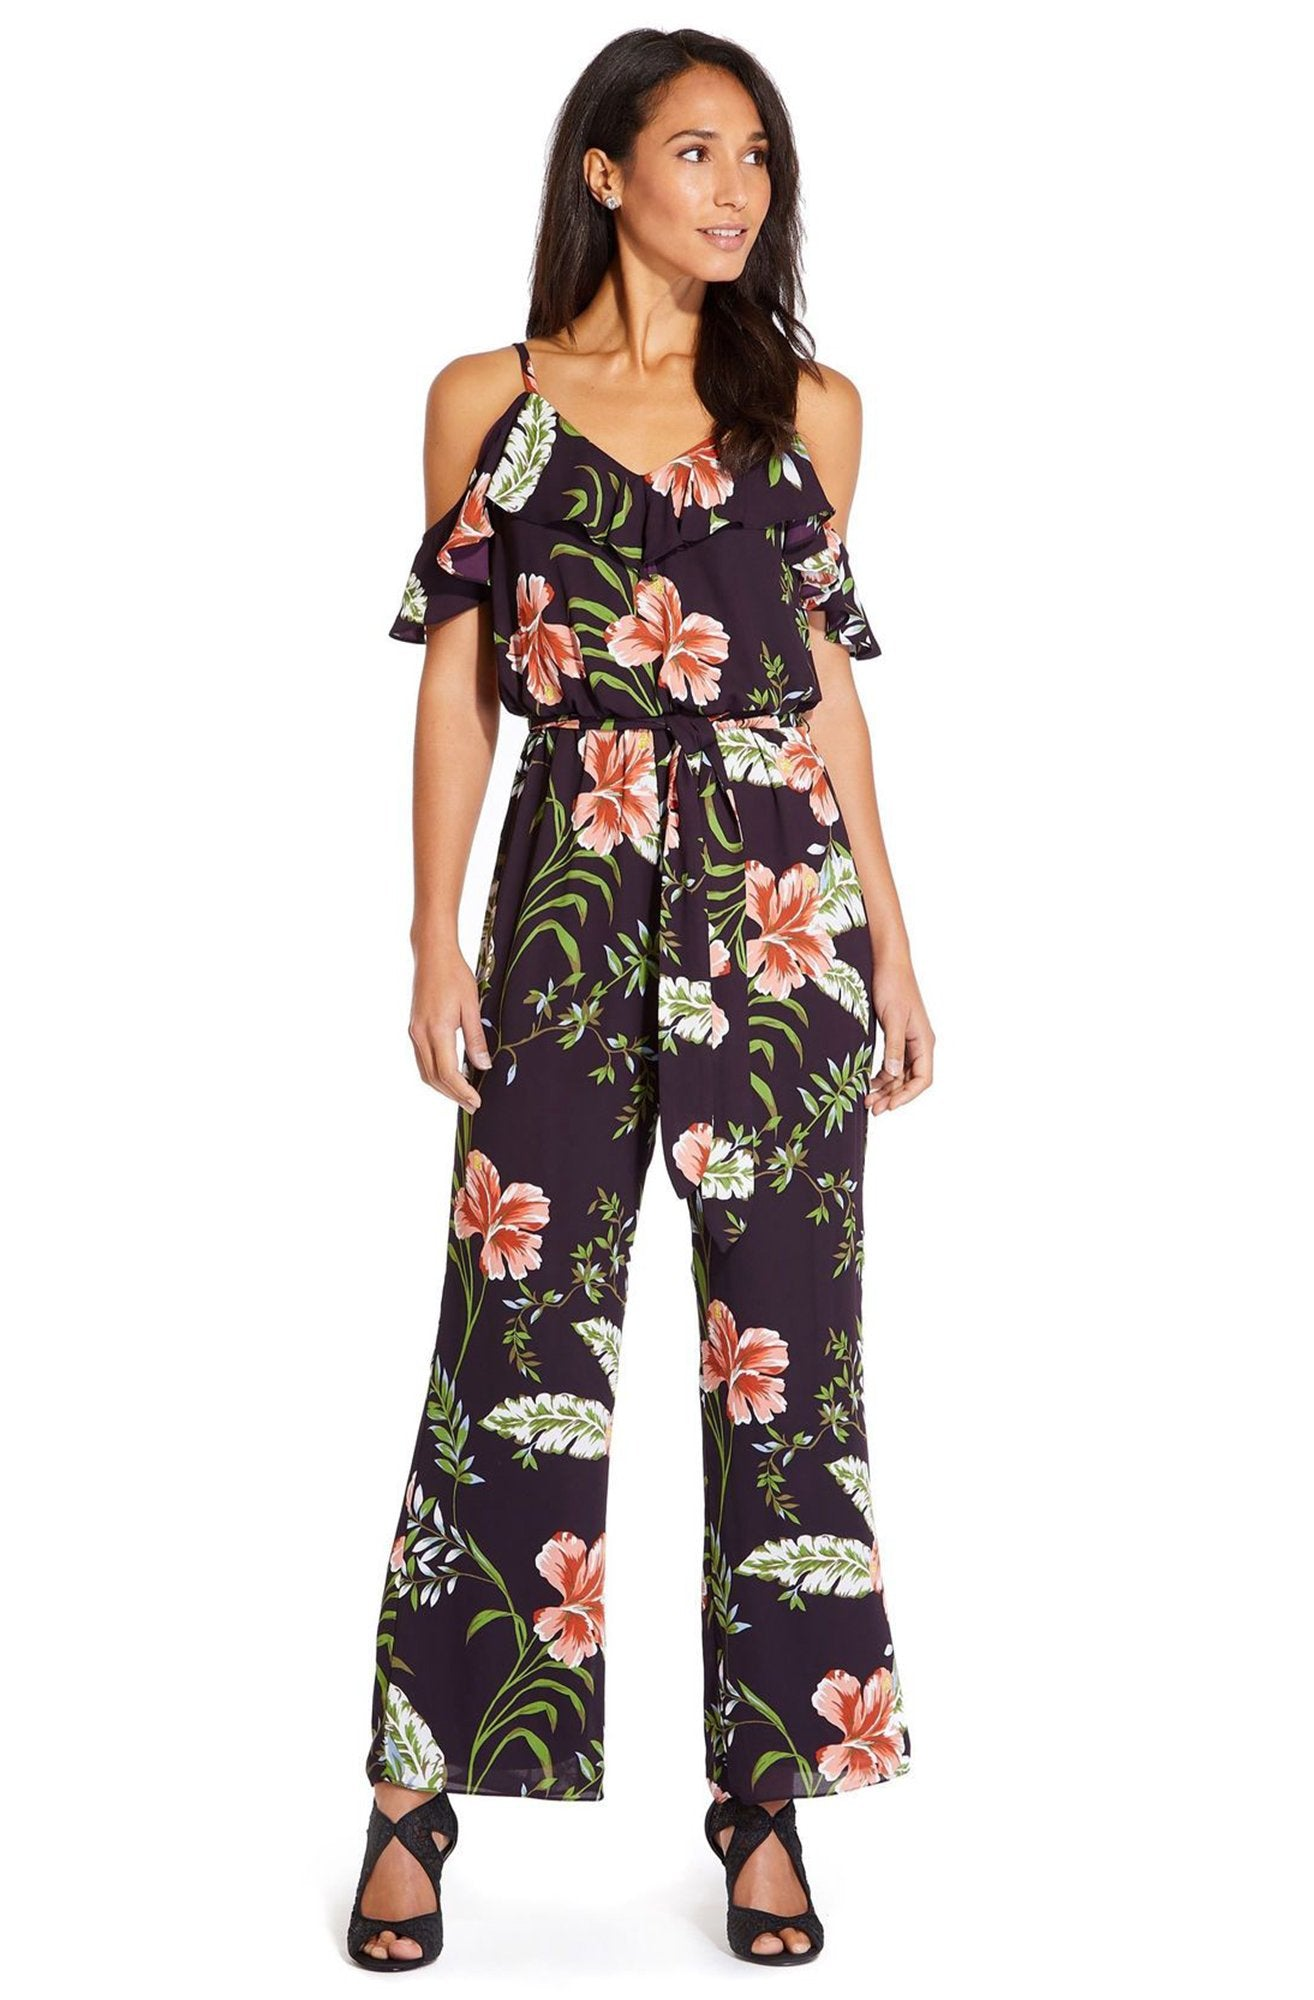 Adrianna Papell - AP1D103372 Floral Print V-neck Jumpsuit In Purple and Multi-Color